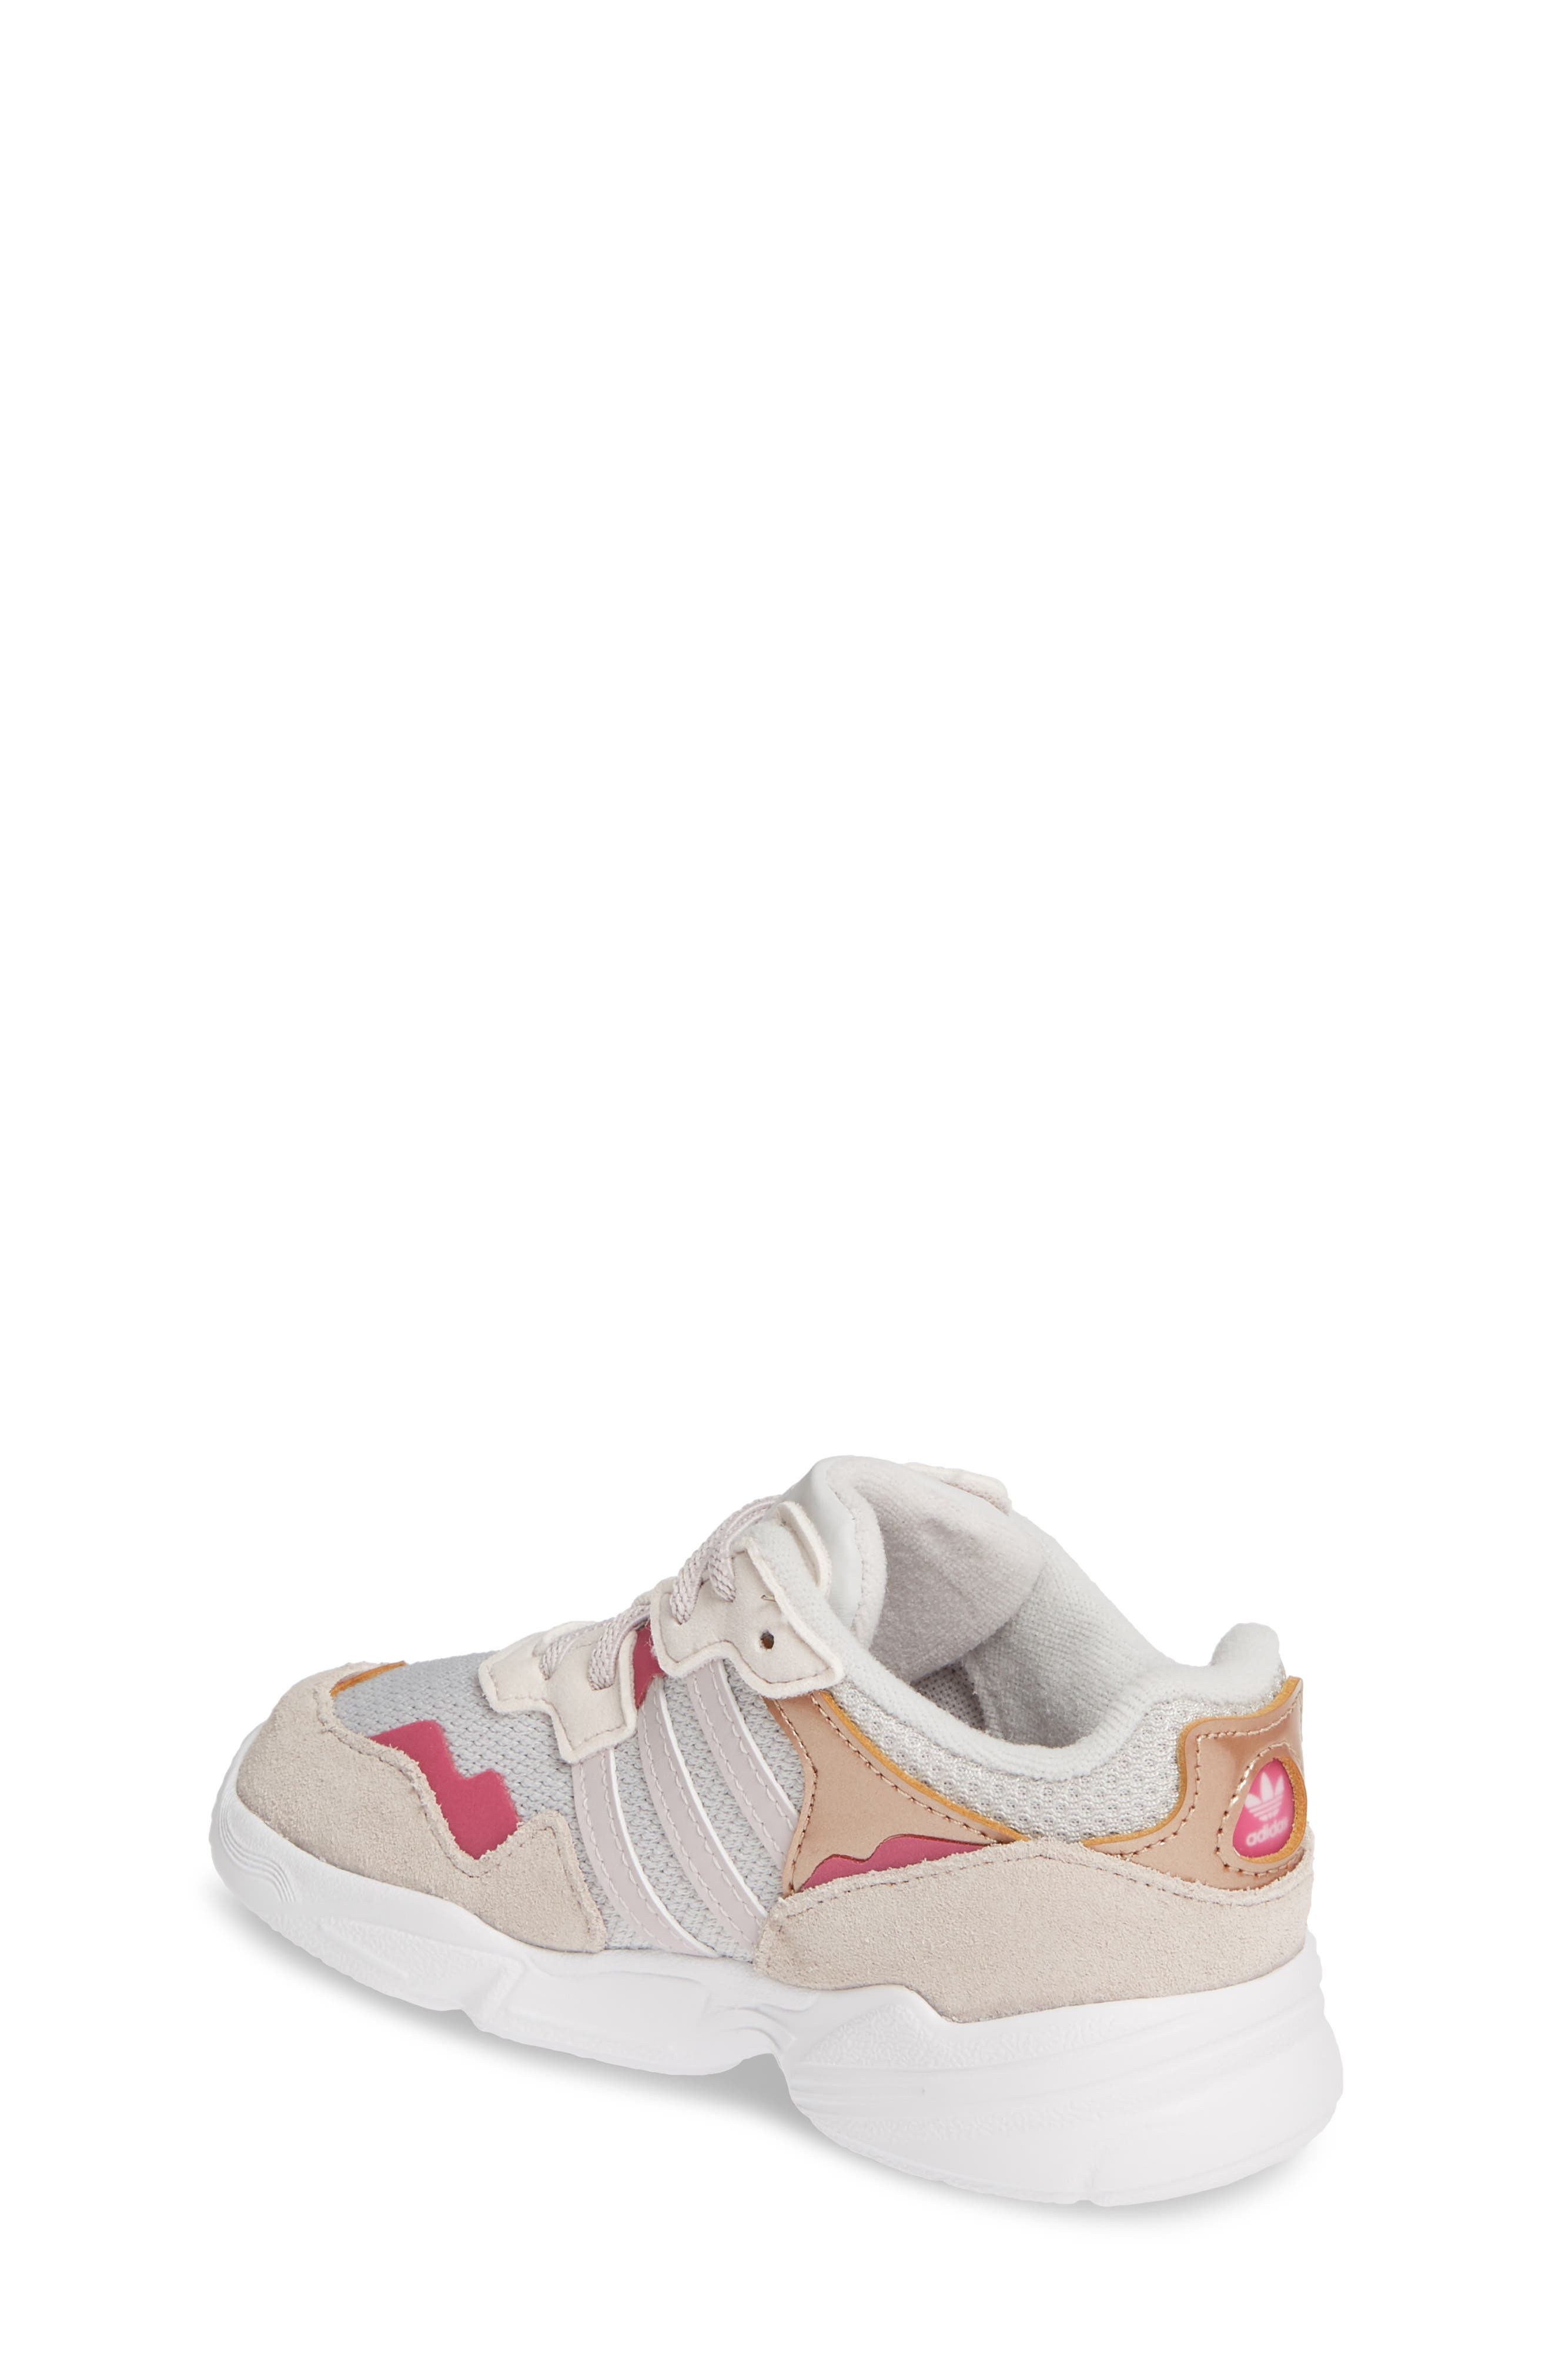 Yung-96 Sneaker,                             Alternate thumbnail 2, color,                             GREY TWO/ ORCHID/ TRUE PINK